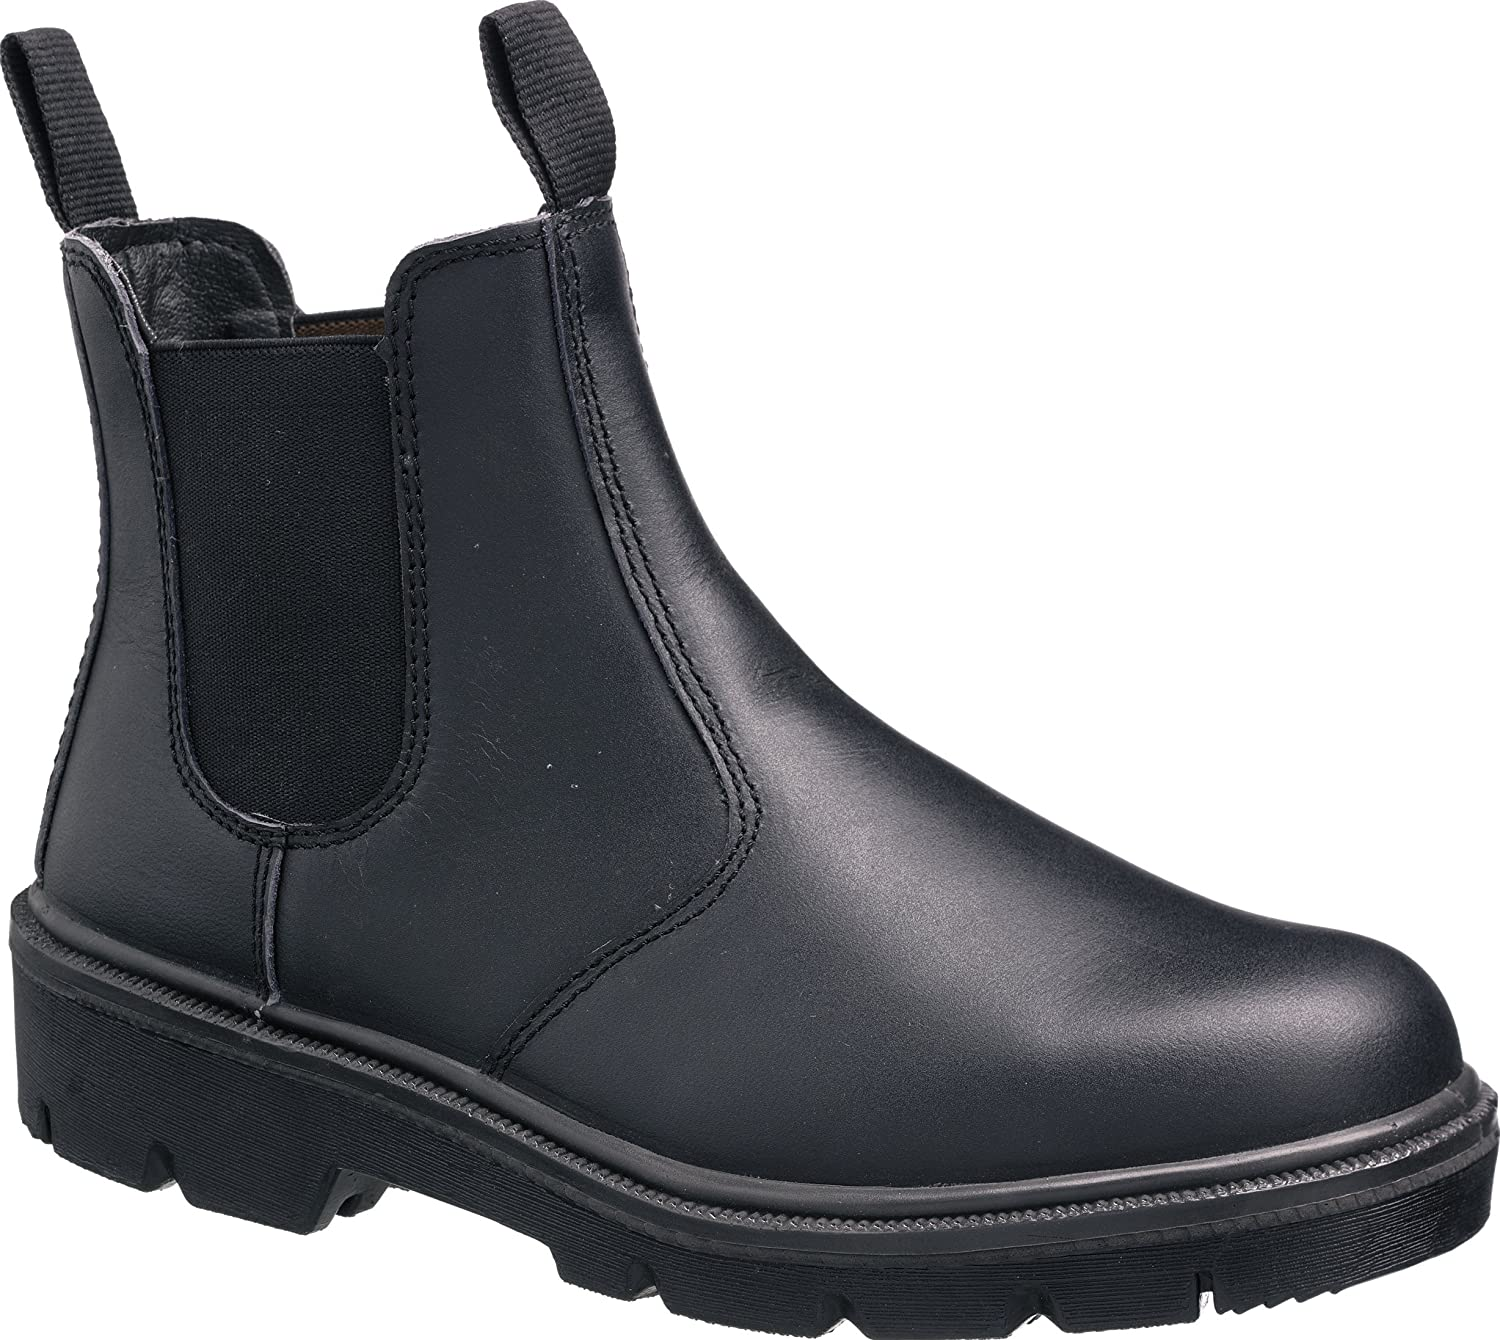 S3 Leather Dealer Chelsea Slip On Steel Toe Cap Midsole Safety Work Boots Shoes